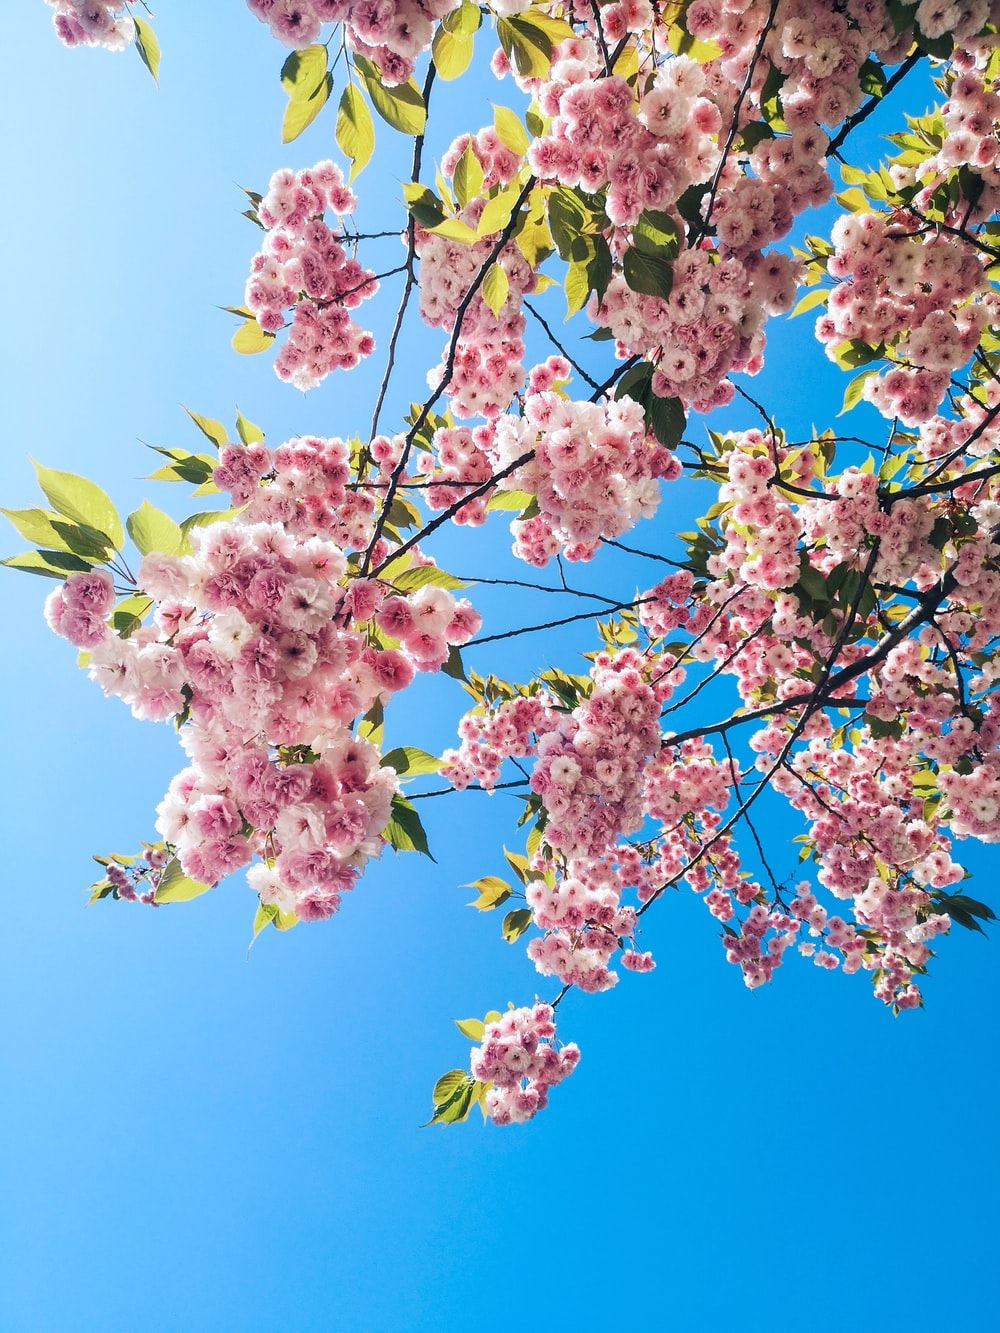 macro photography of blooming pink cherry blossoms